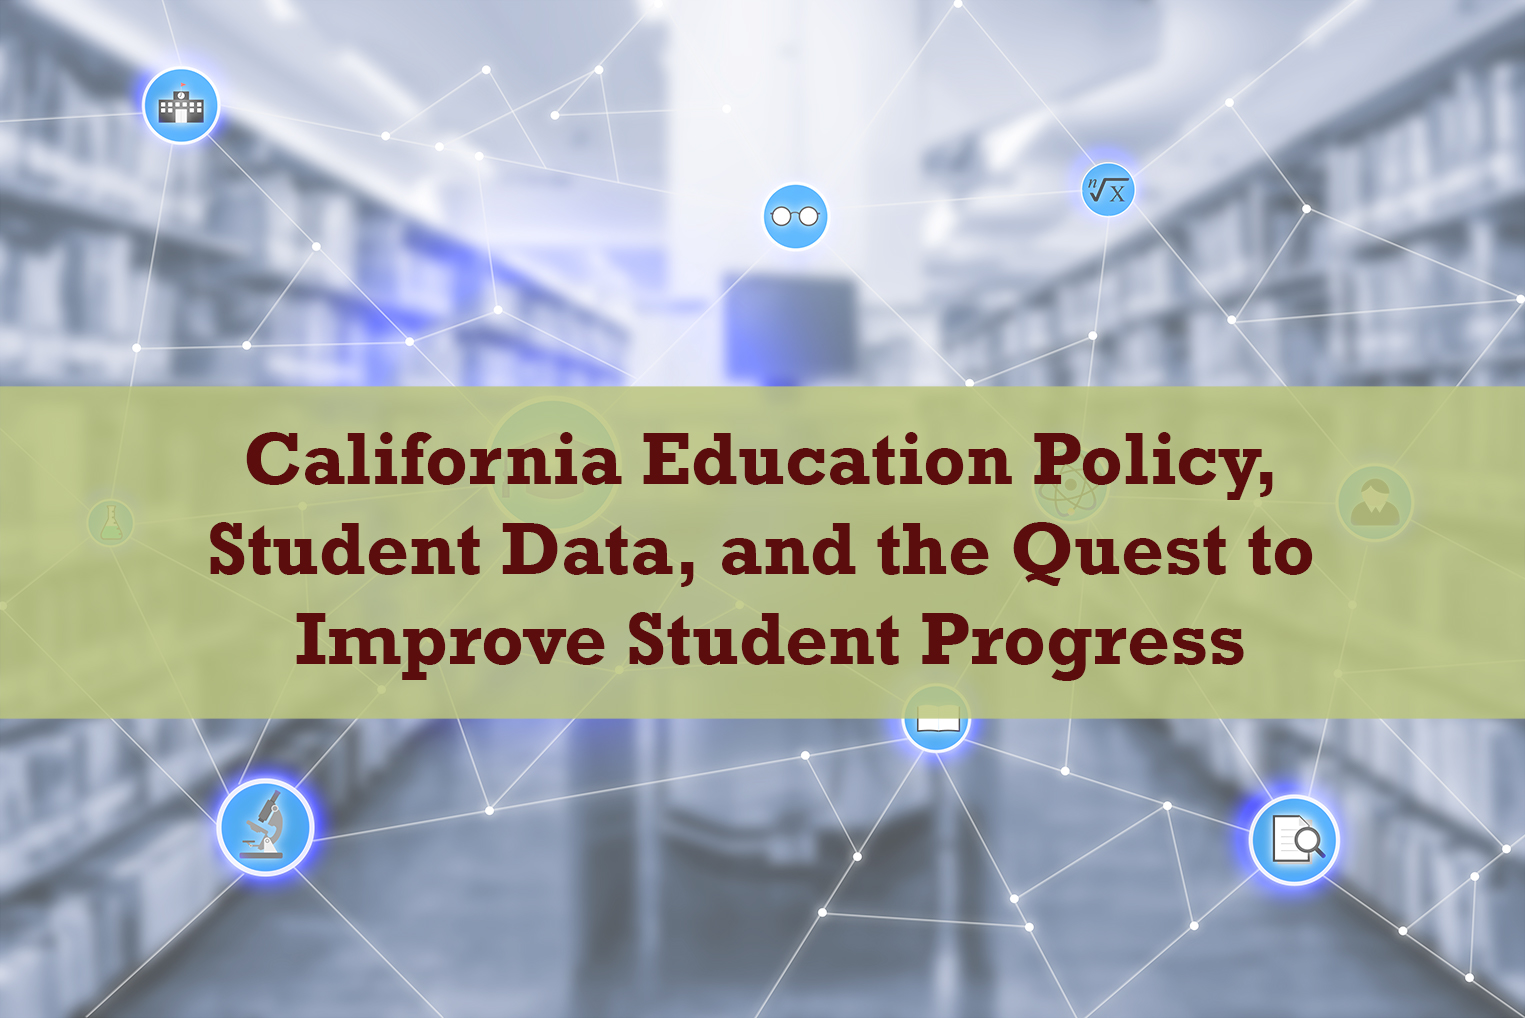 California Education Policy, Student Data, and the Quest to Improve Student Progress